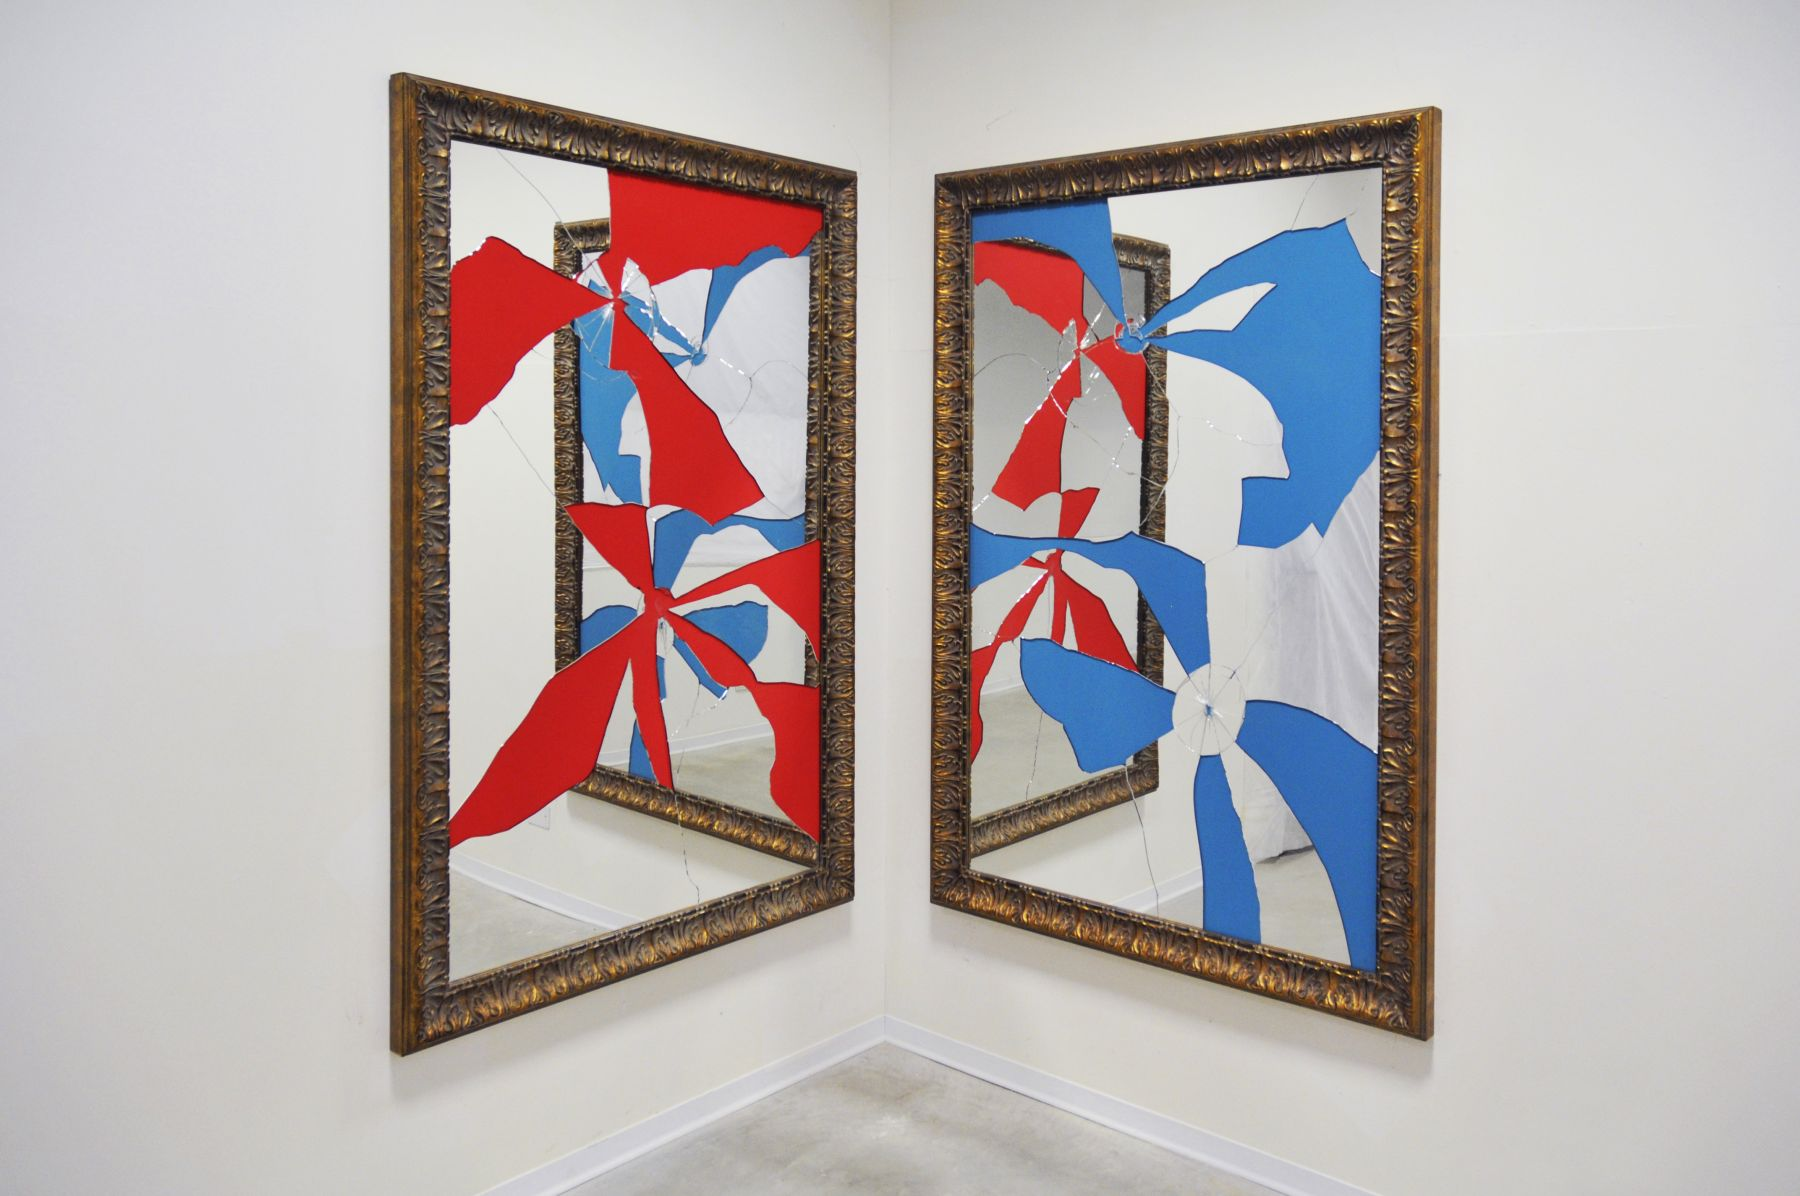 Two Less One Colored, 2015, Mirror, gilded wood